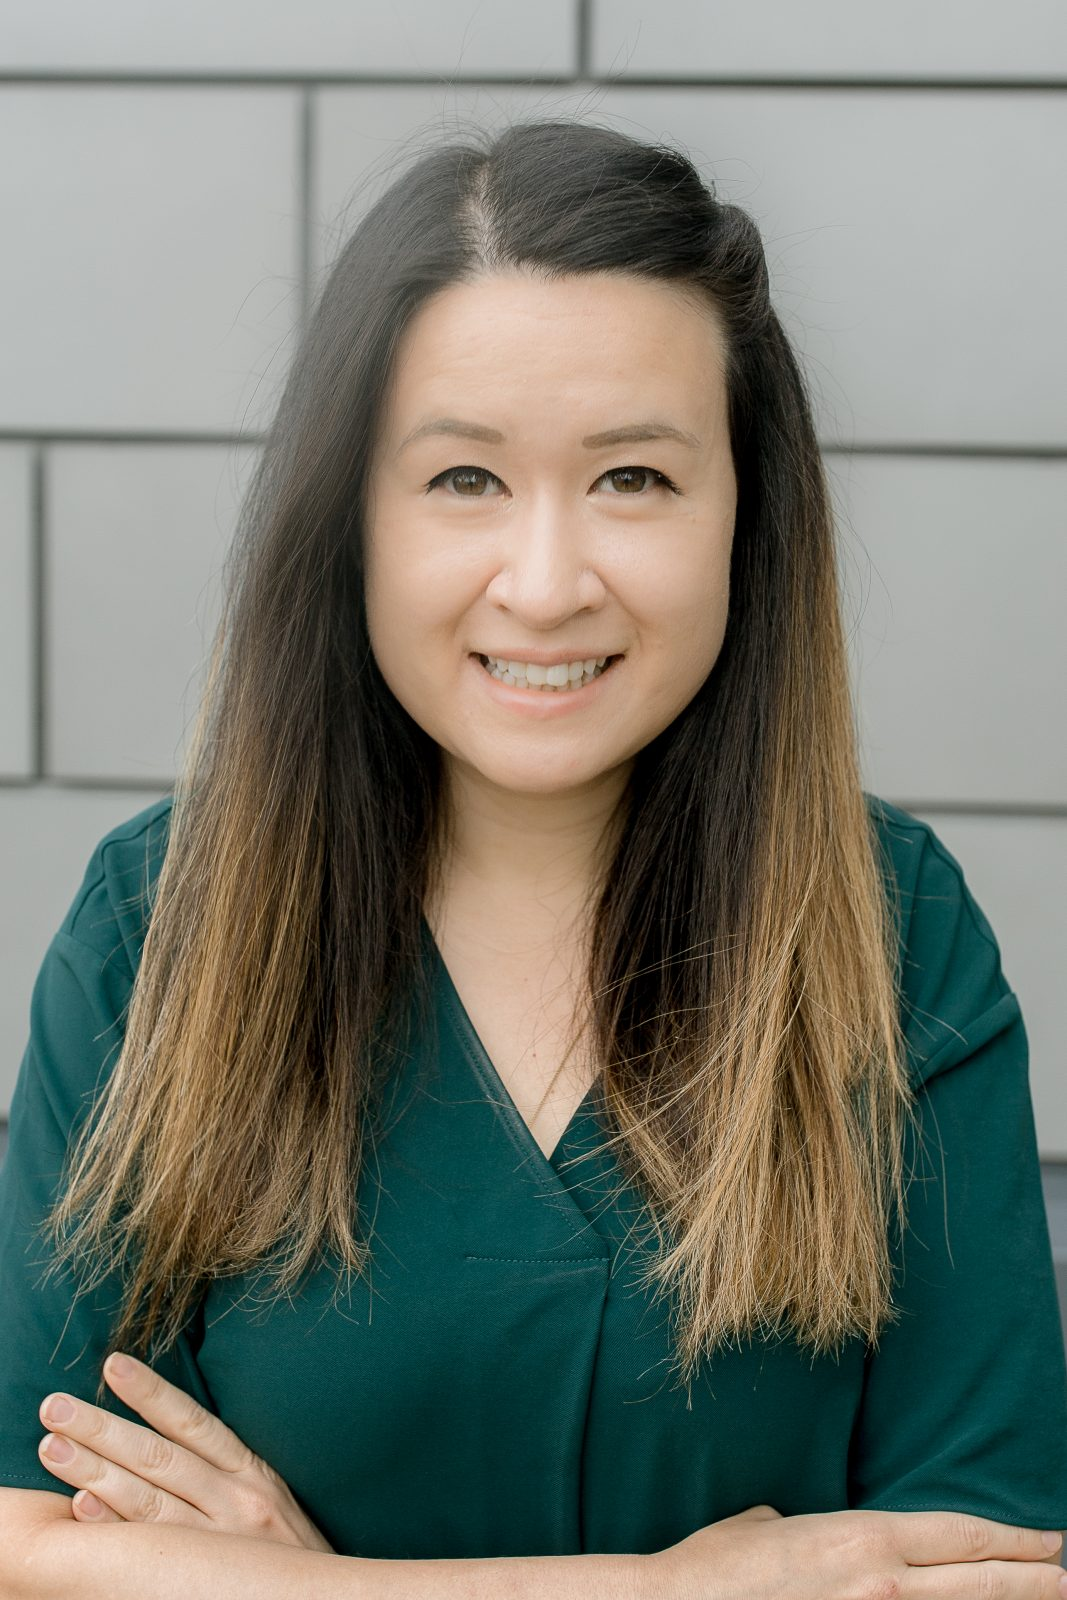 A warm welcome for Dr. Amy Margaret Chung